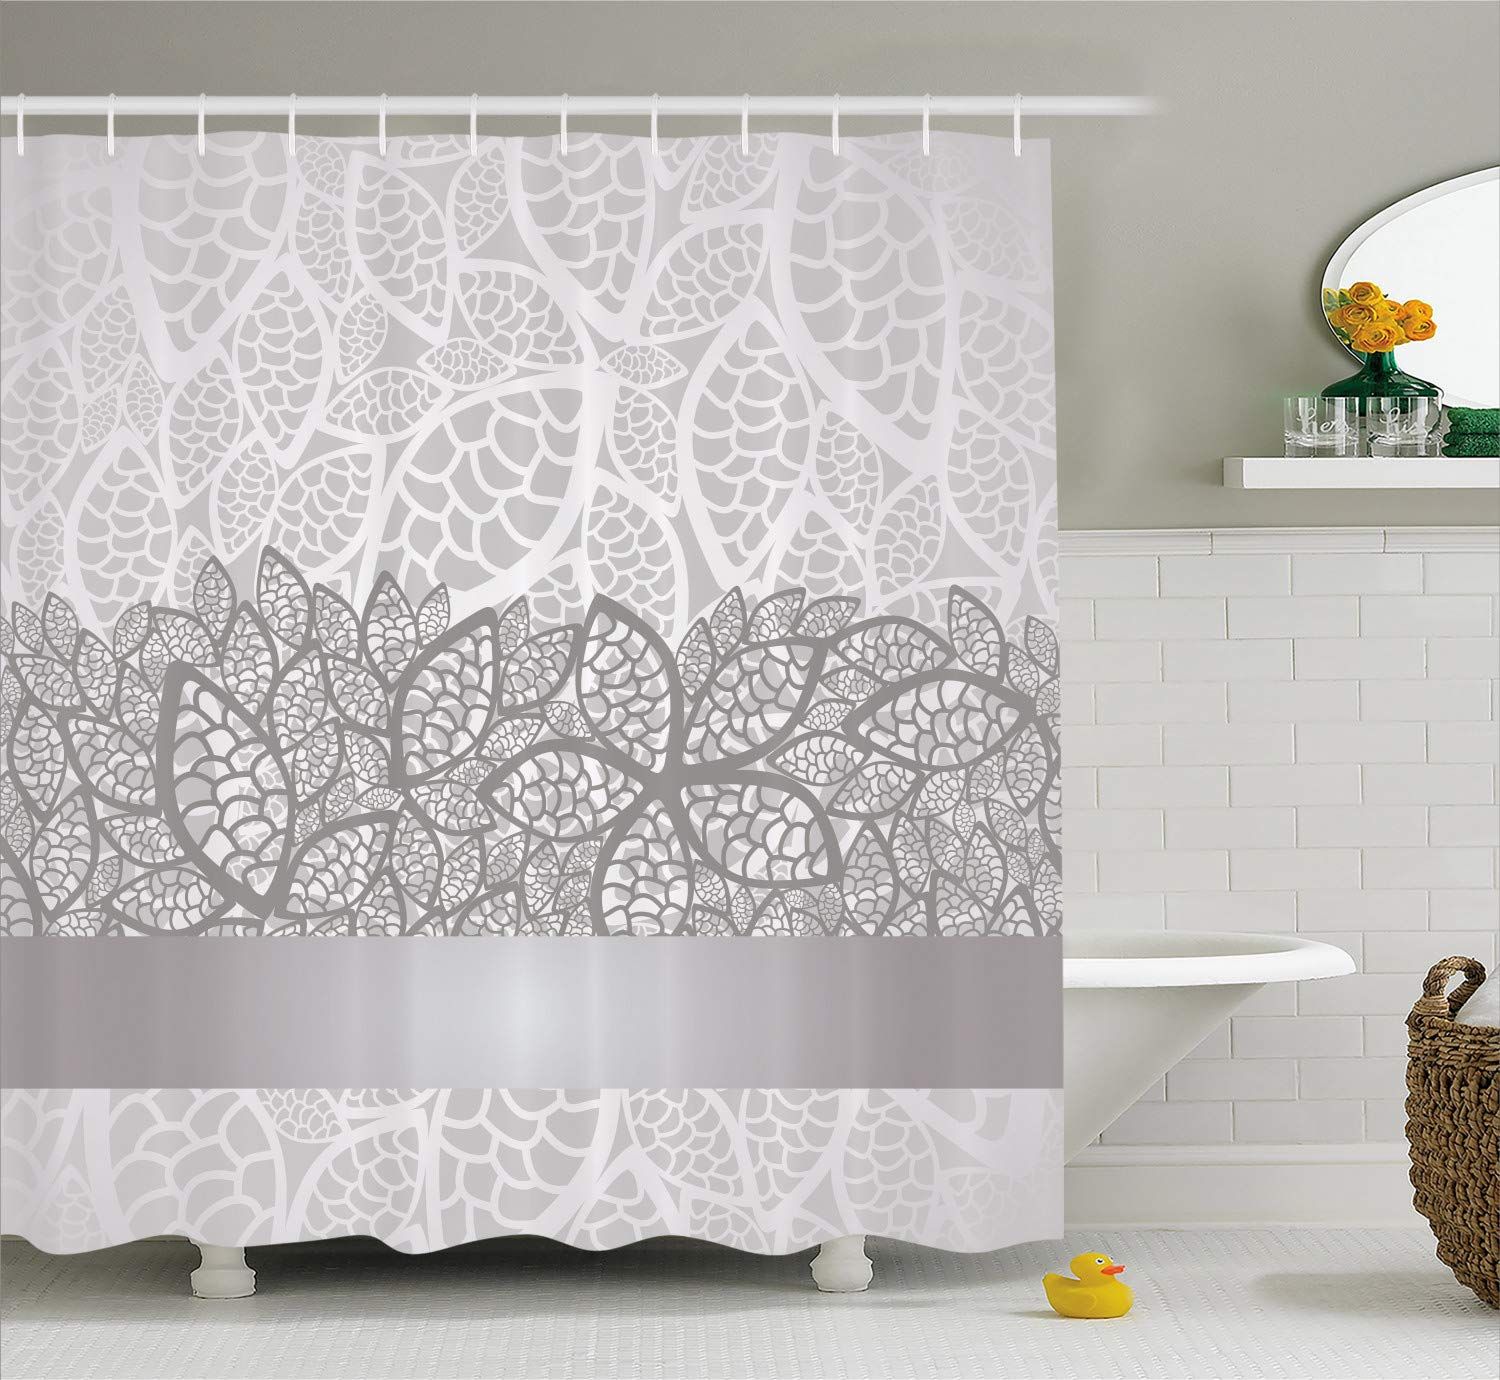 Ambesonne Grey Shower Curtain, Lace Inspired Flower Motifs Bridal Composition Leaves Wedding Theme, Cloth Fabric Bathroom Decor Set with Hooks, 75'' Long, Gray Silver